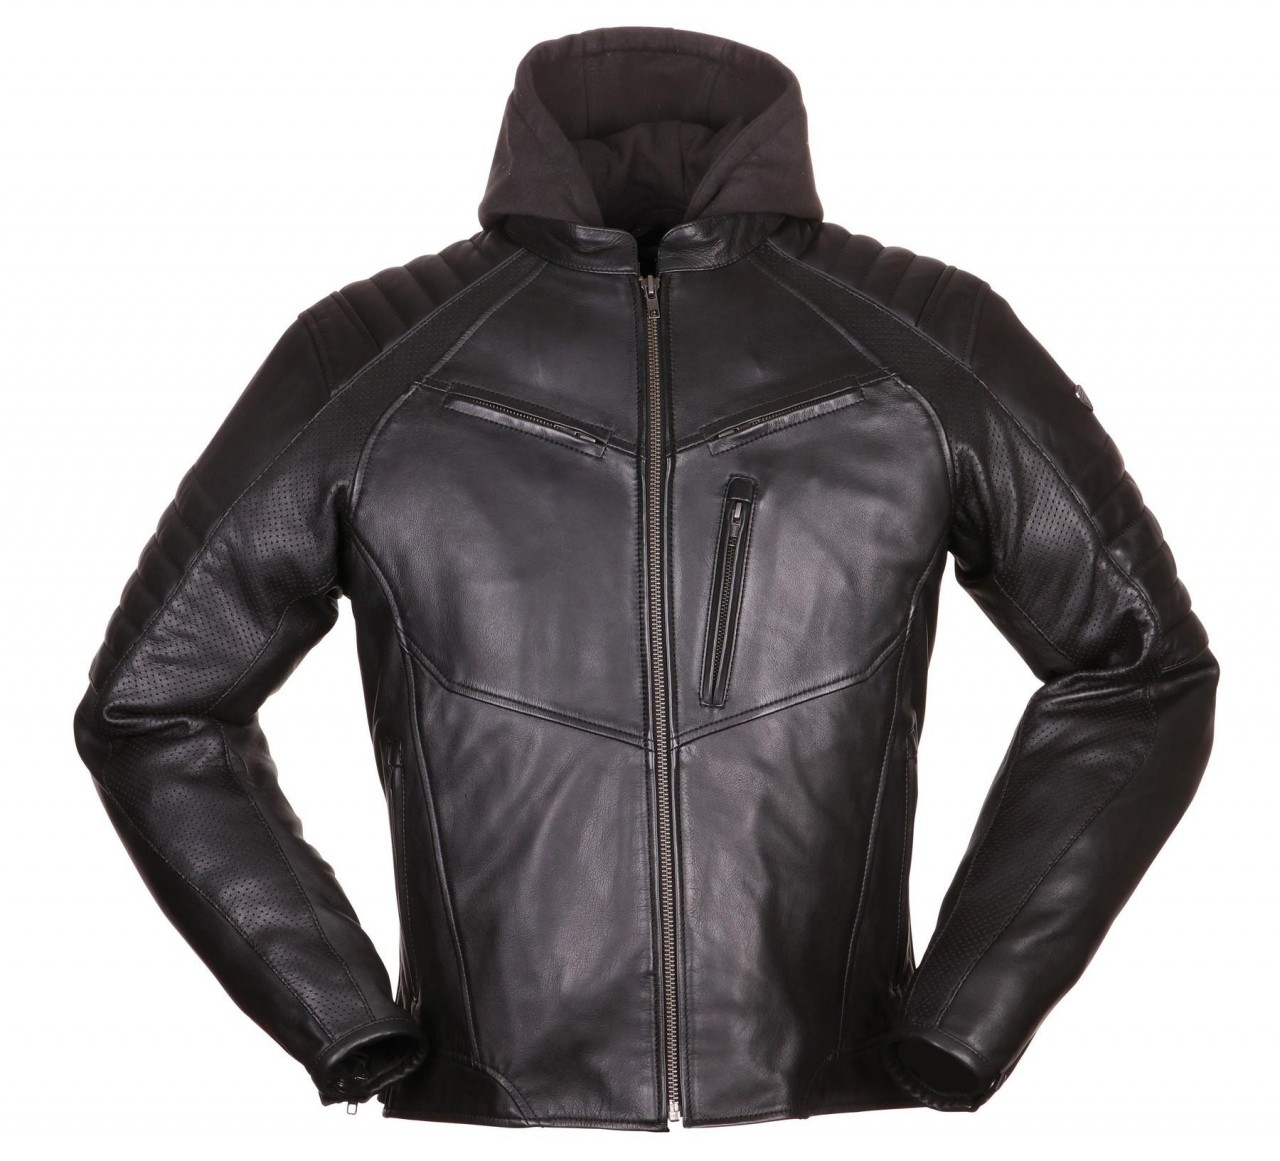 Modeka - Bad Eddie Lederjacke XL Black 010870-10-XL